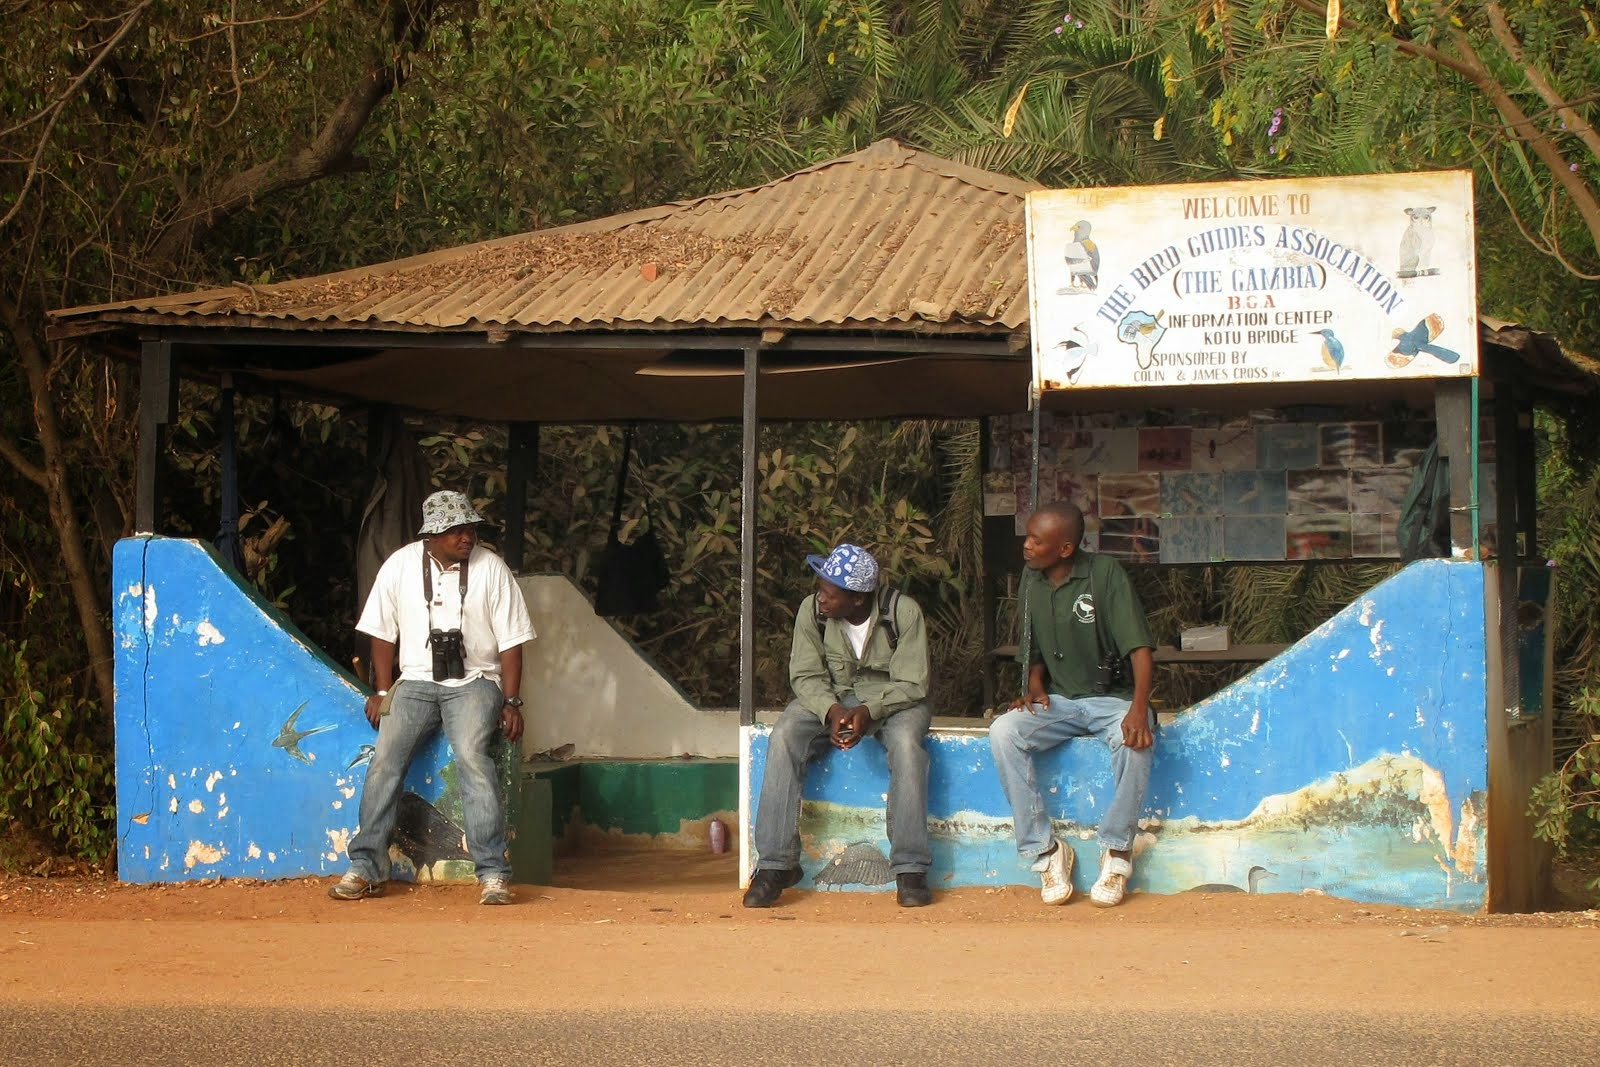 Gambian Bird Guides Association Office